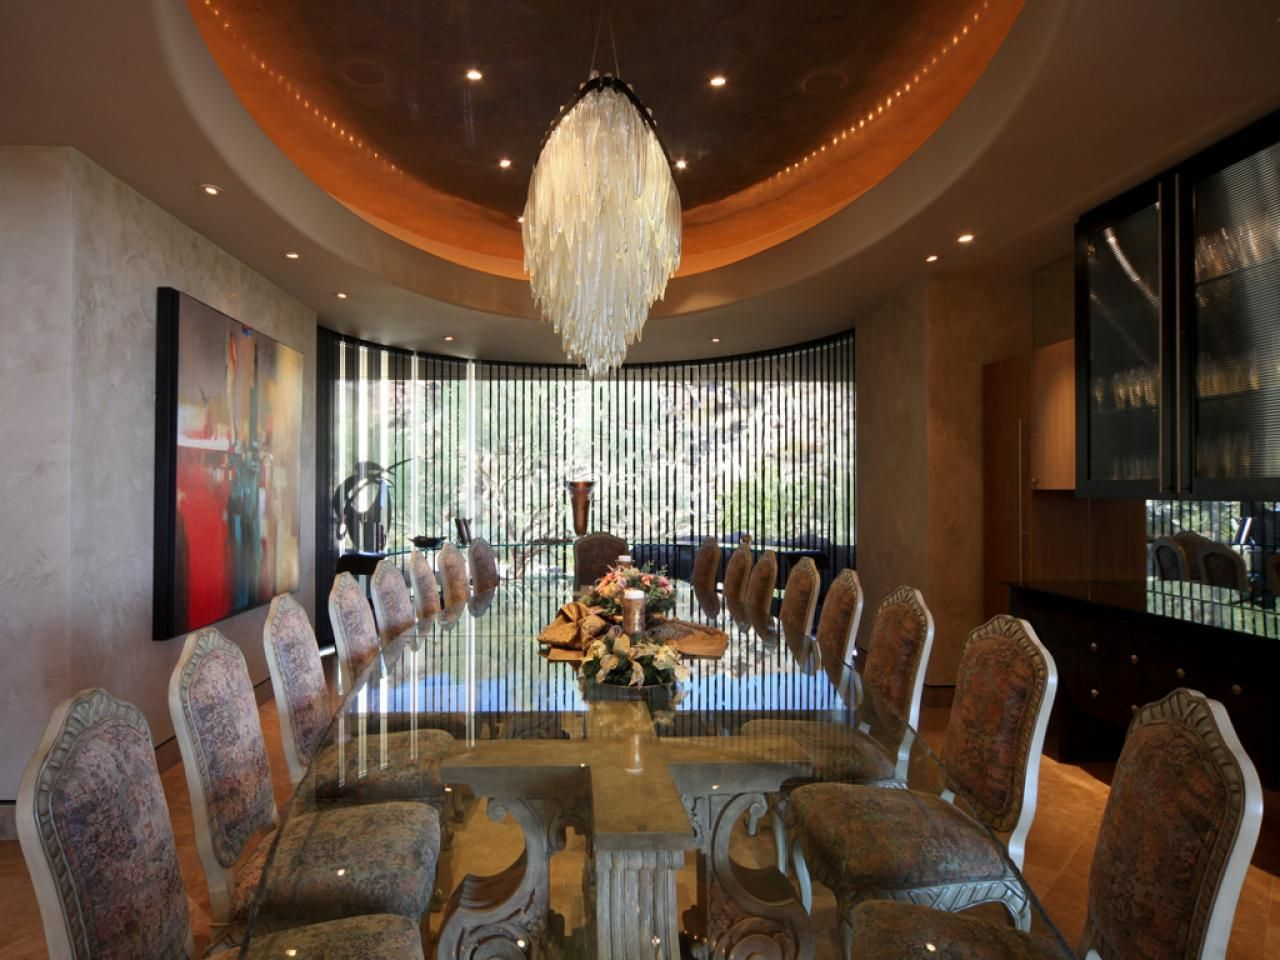 featured on hgtv's million dollar rooms , this formal dining room